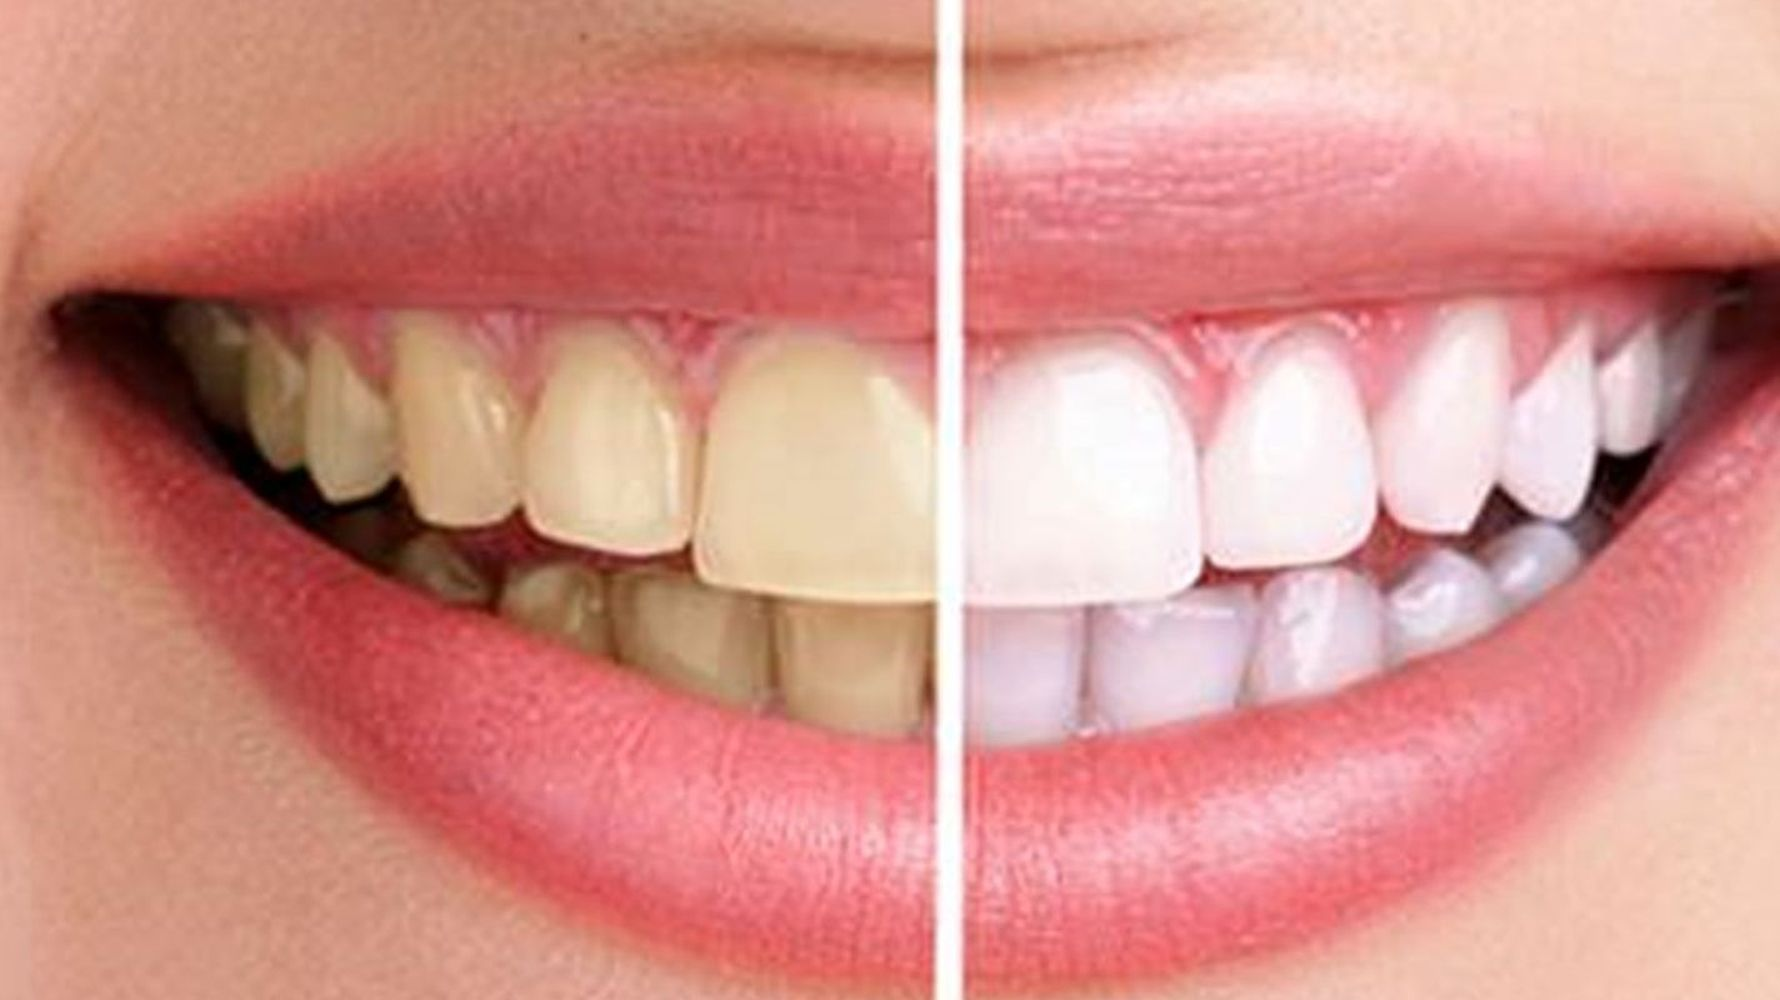 yellowing teeth prevent laughing